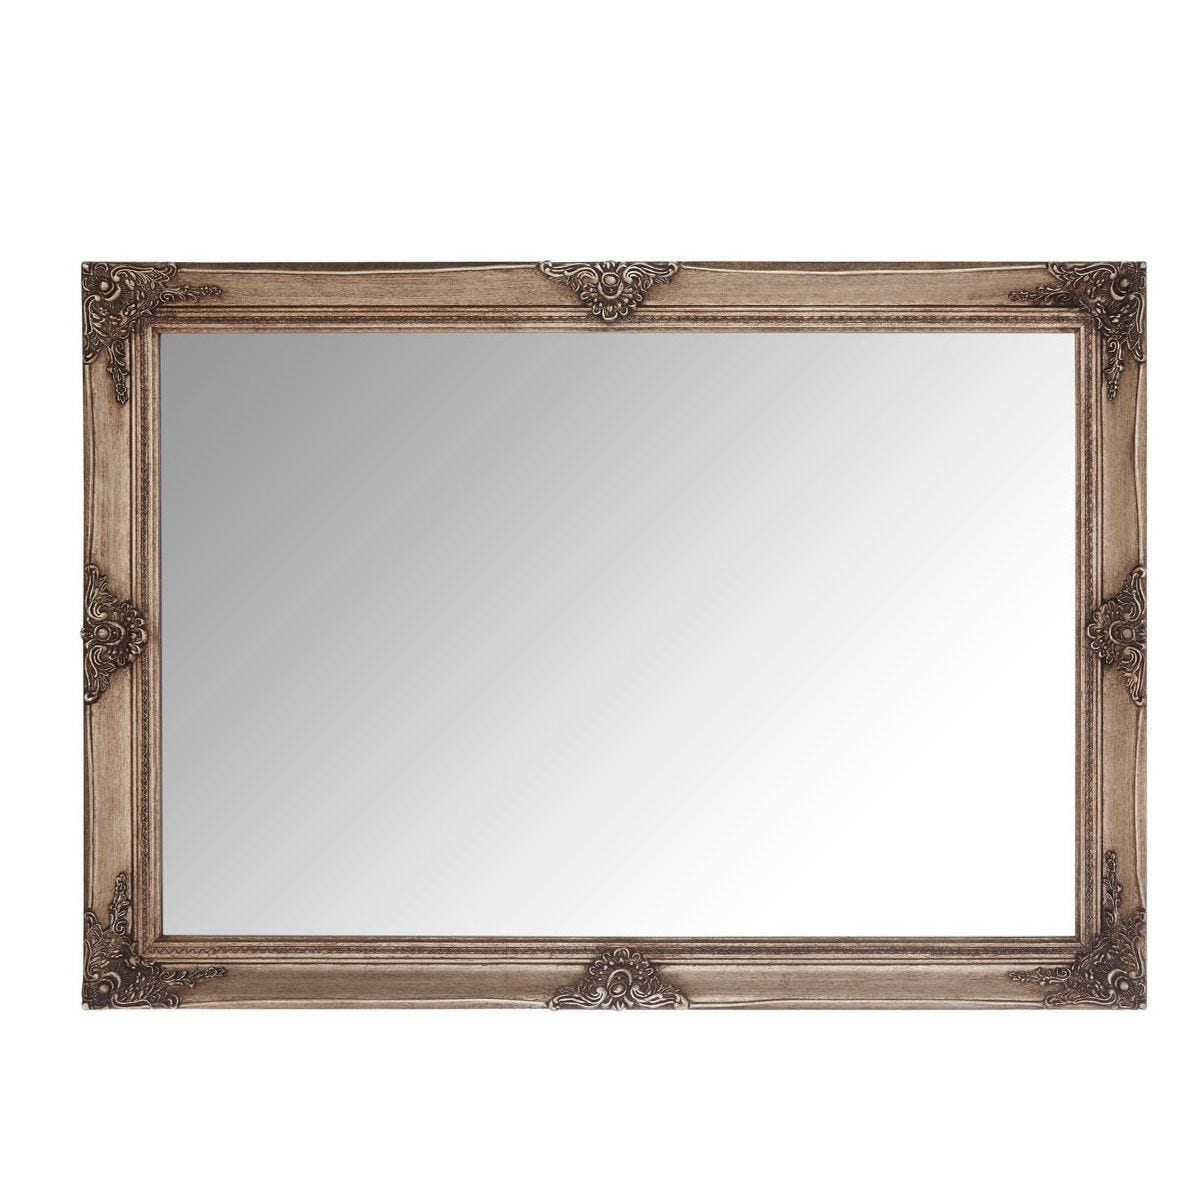 Premier Housewares Baroque Rectangular Wall Mirror - Gold